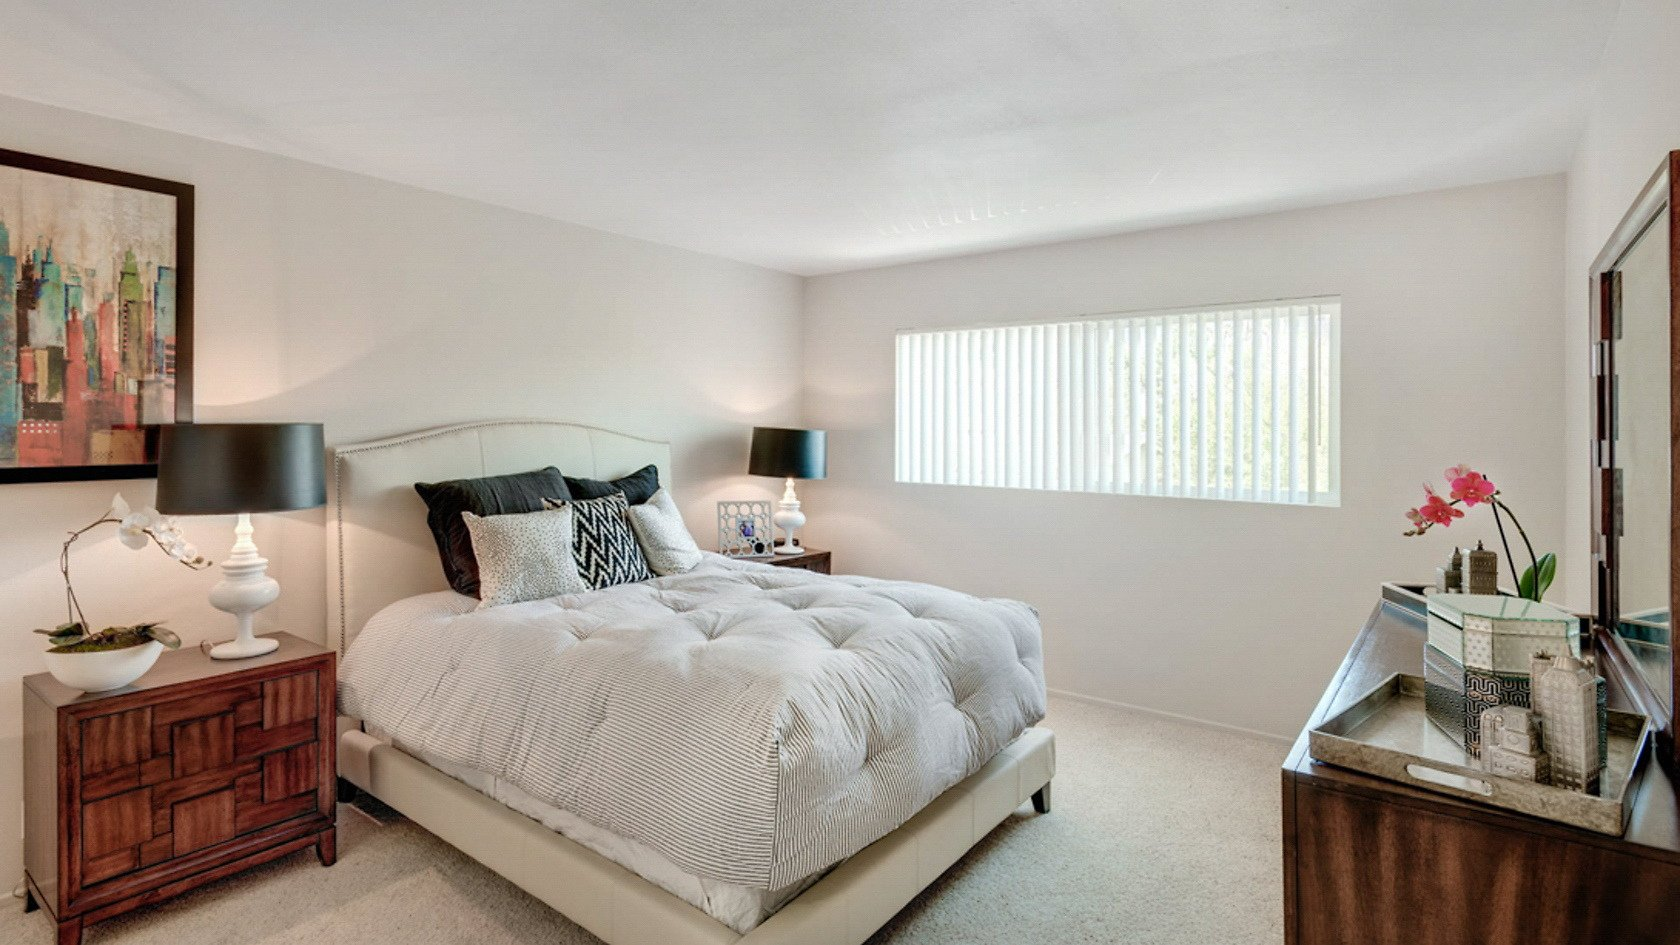 The Henley Short Term Stay-Sample Image of Glendale CA Nurse Apartments